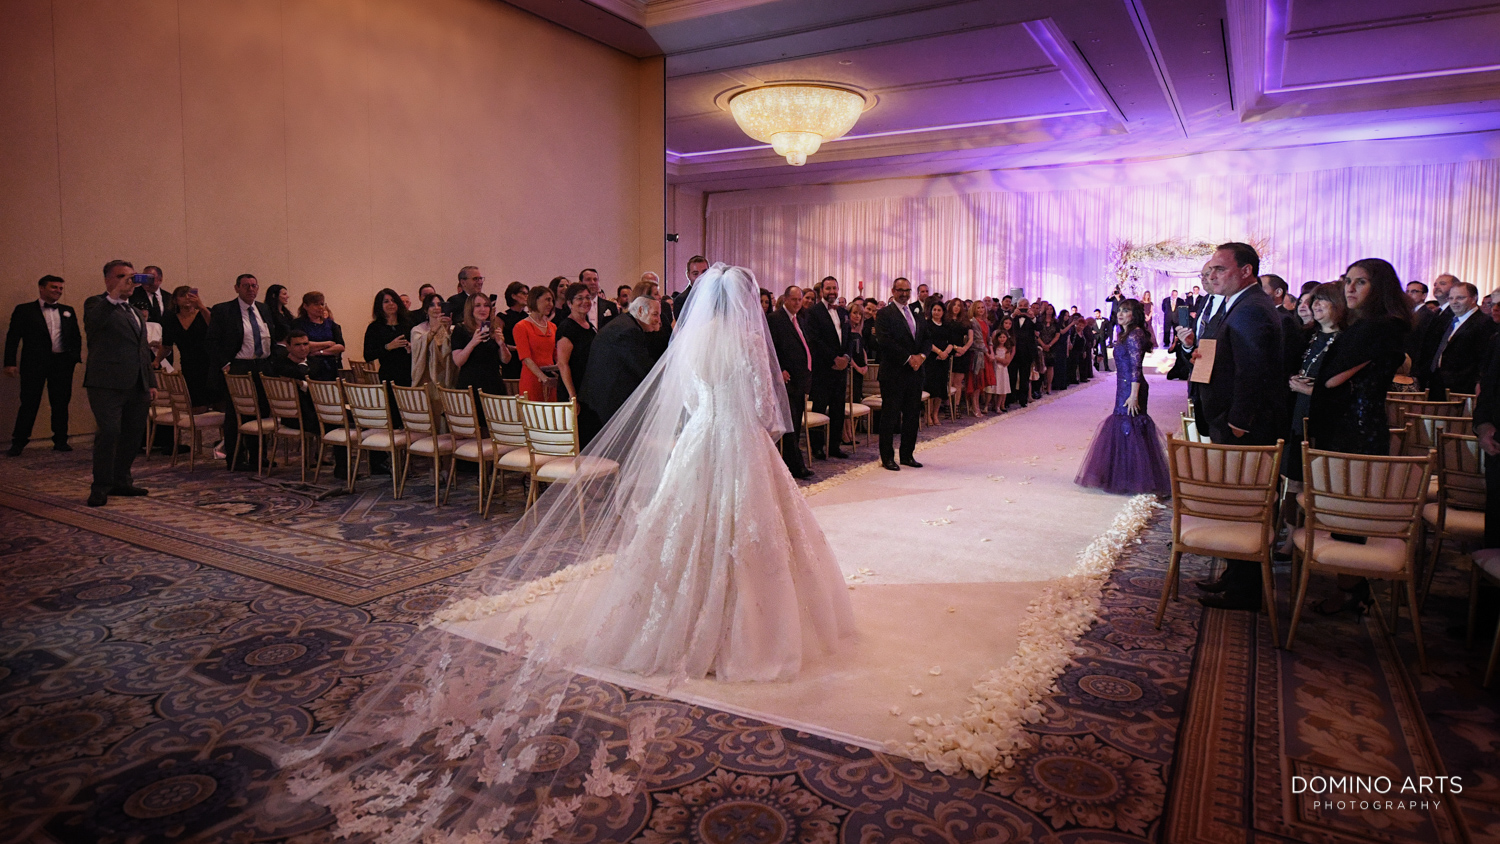 Modern Jewish wedding ceremony pictures at Trump national Doral in South Florida